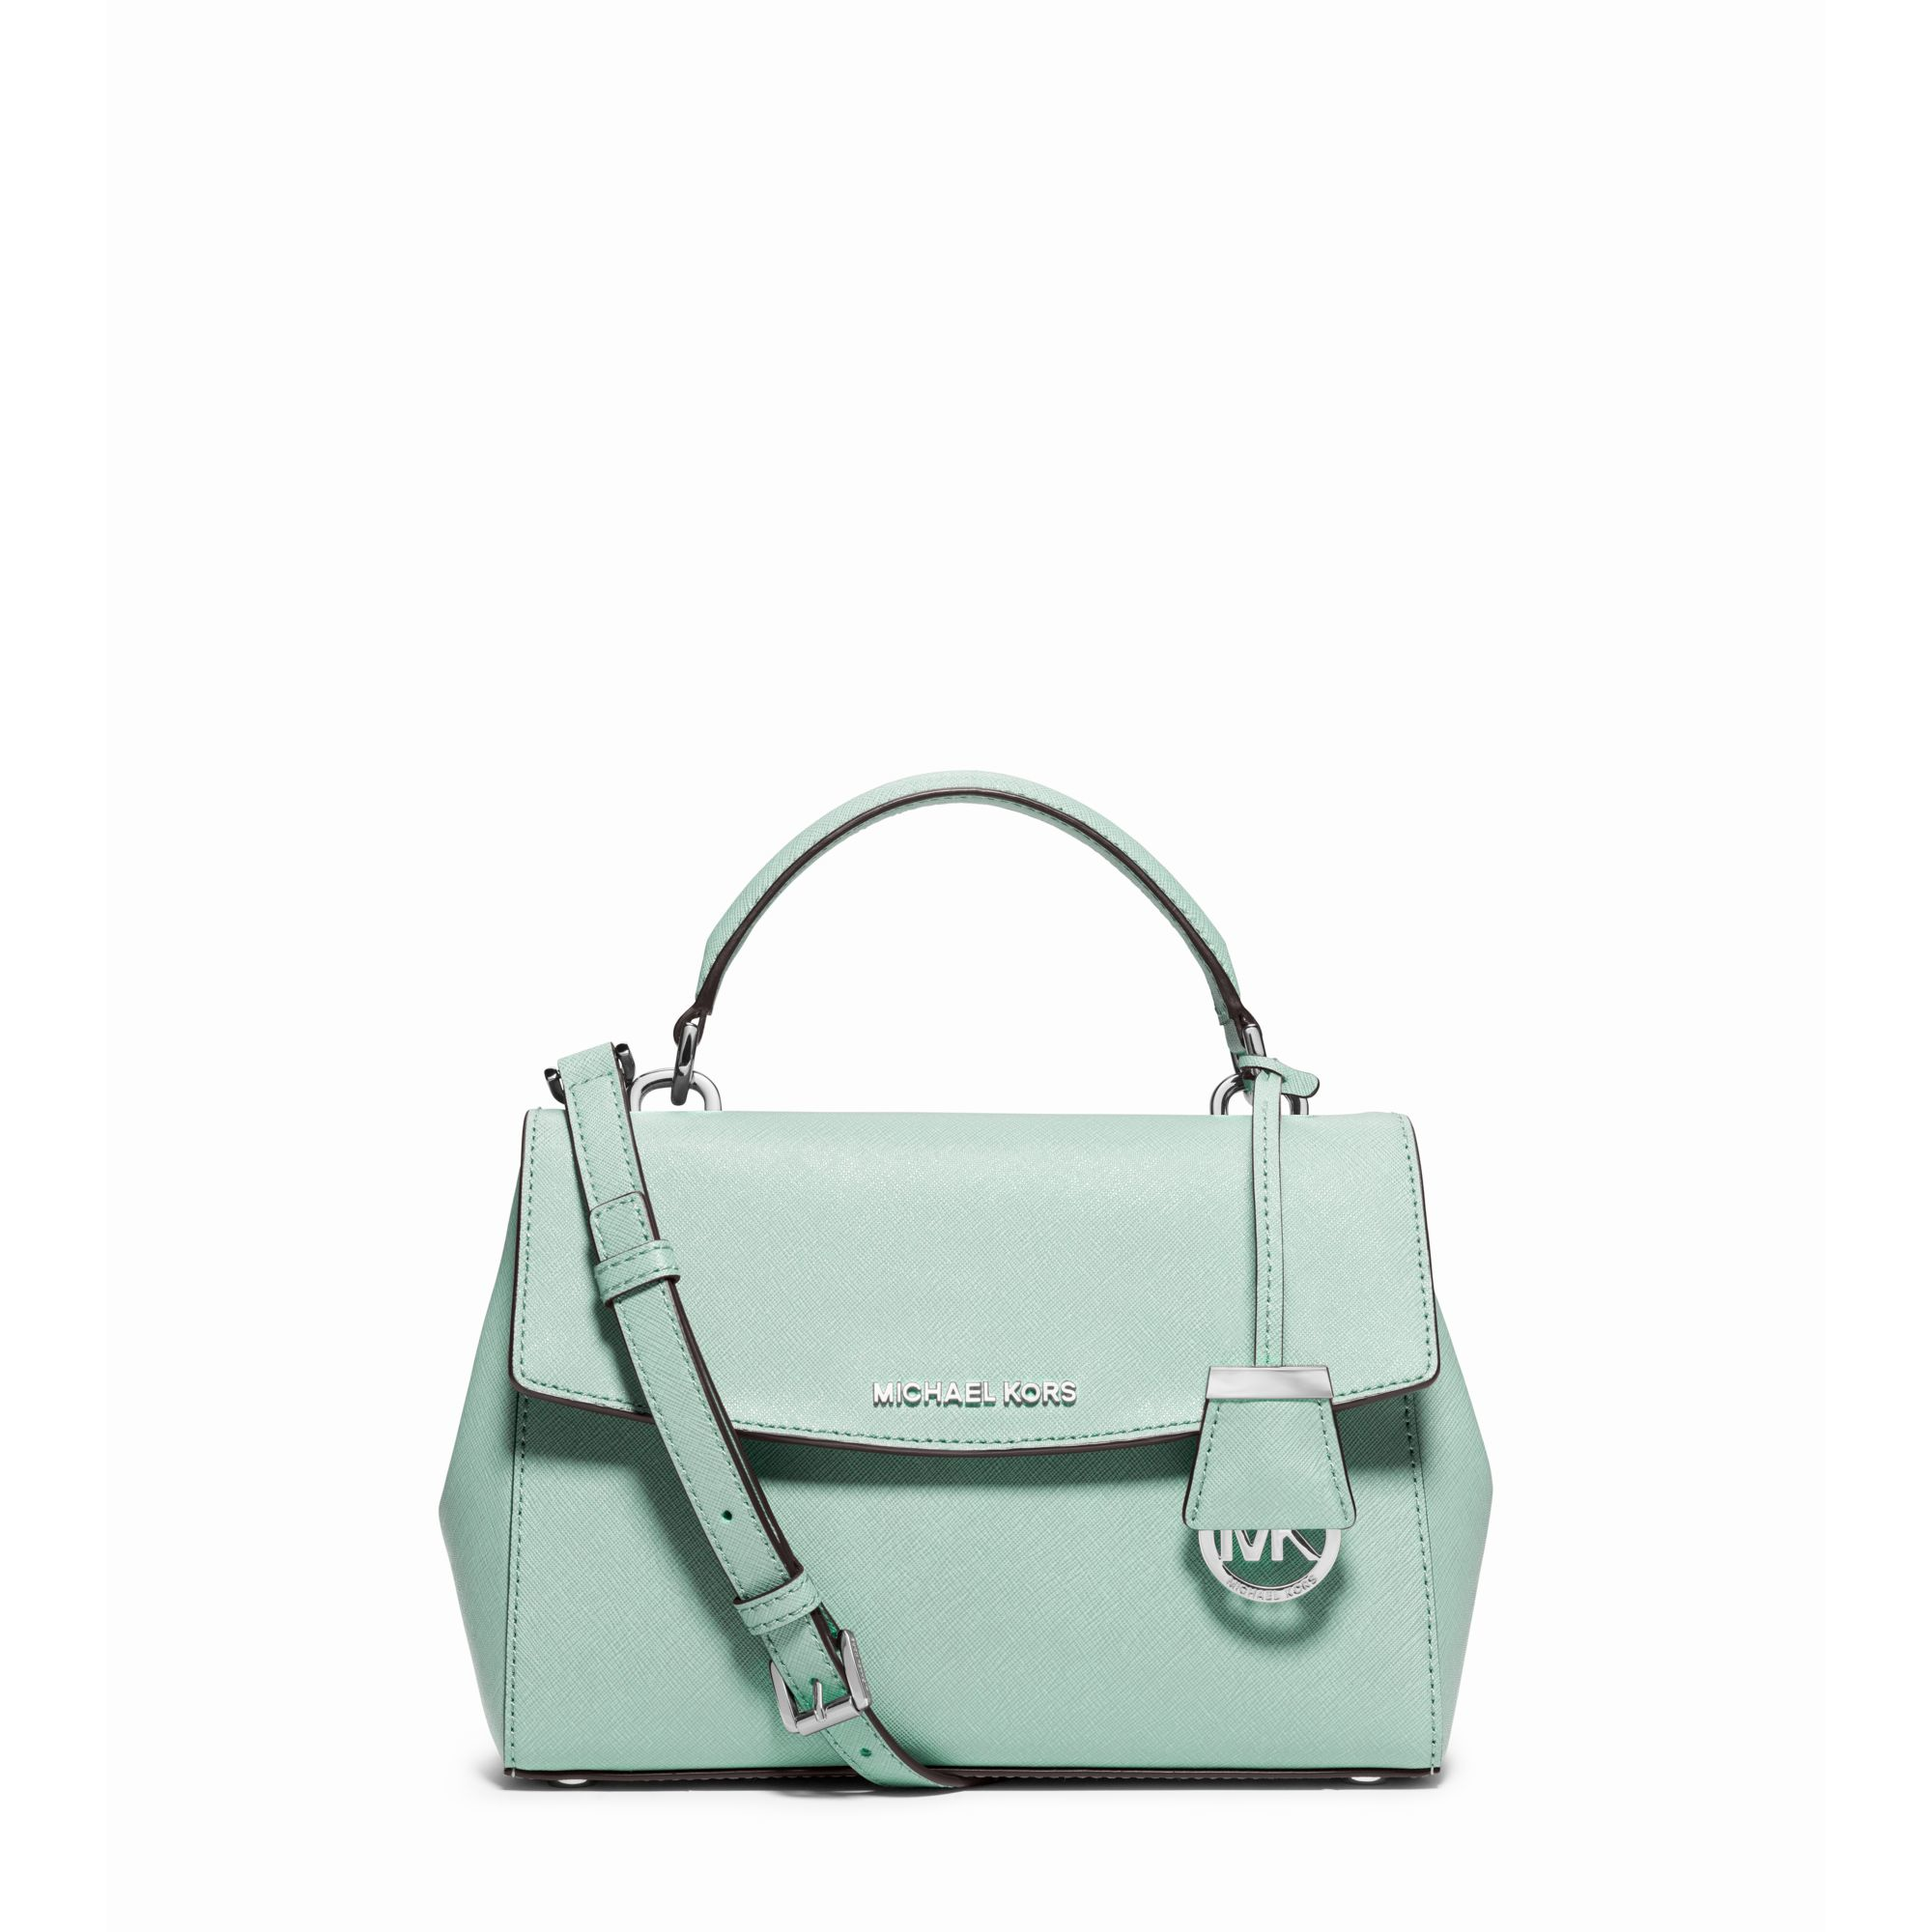 93a7bf8d263a Michael Kors Ava Small Saffiano Leather Satchel in Green - Lyst